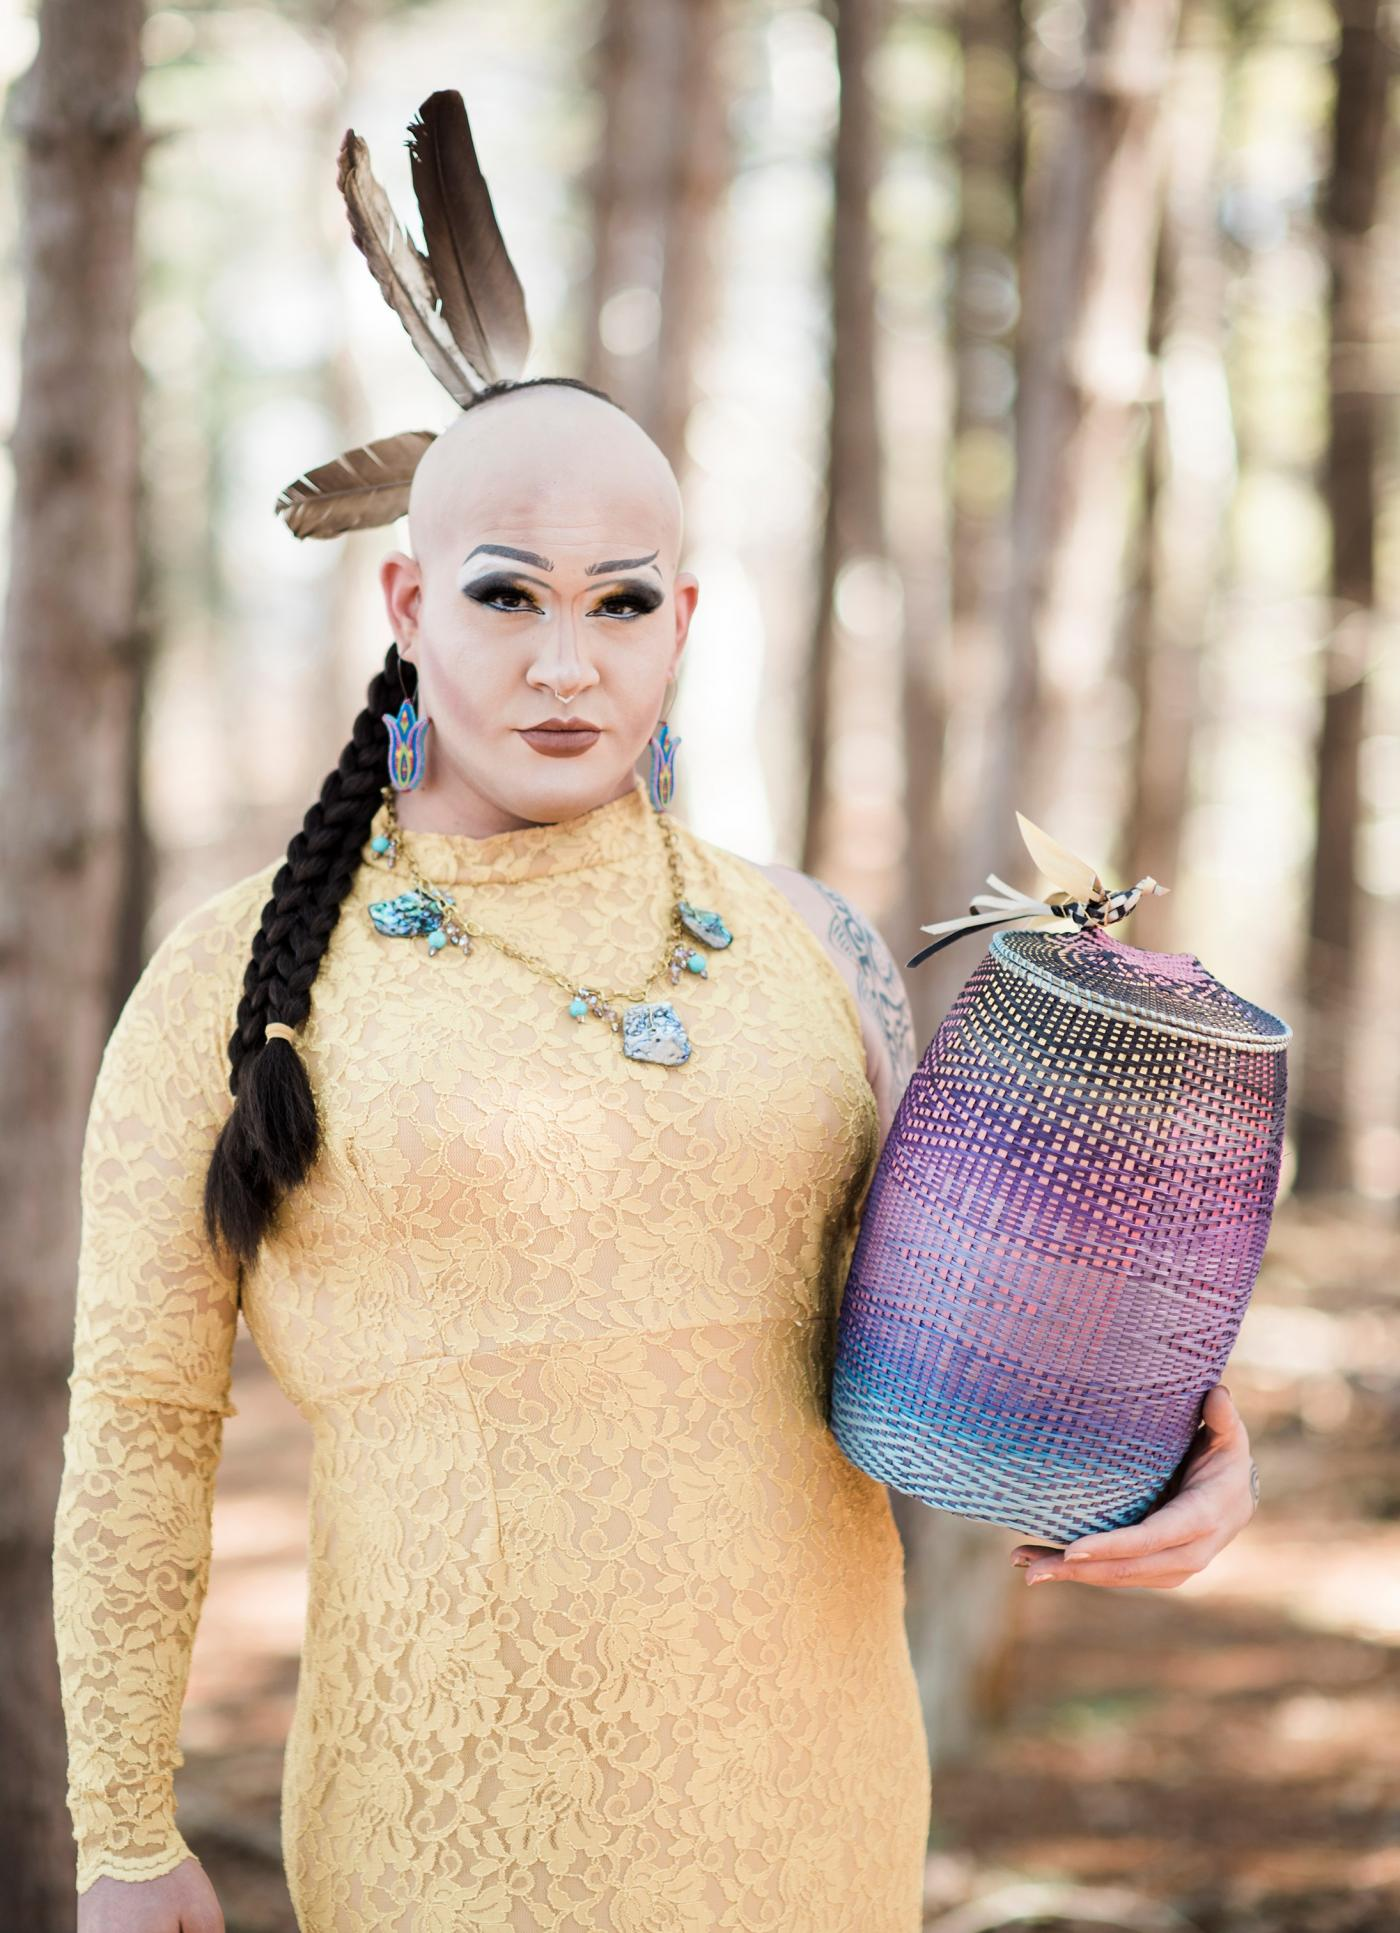 A person wearing a yellow dress and with Native American regalia and holding a multi-colored woven basket stands in a forest on a sunny day